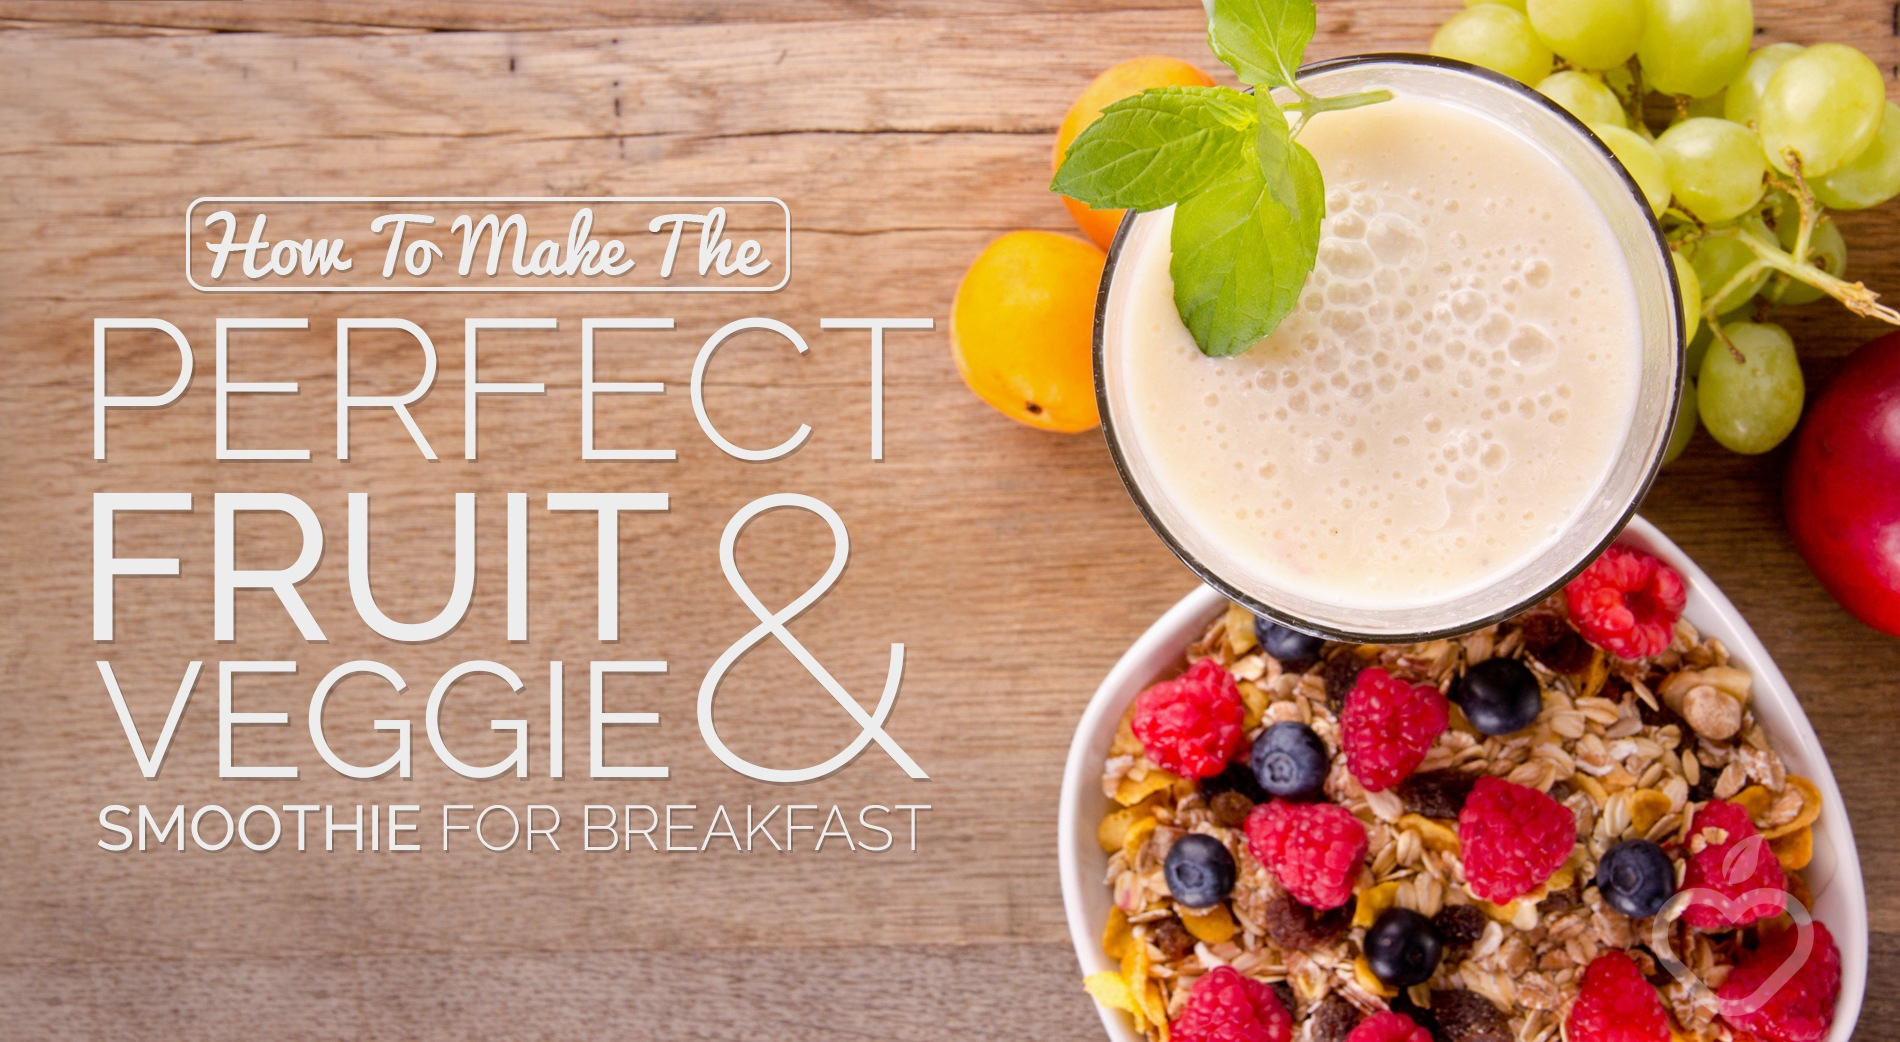 How To Make The Perfect Fruit And Veggie Smoothie For